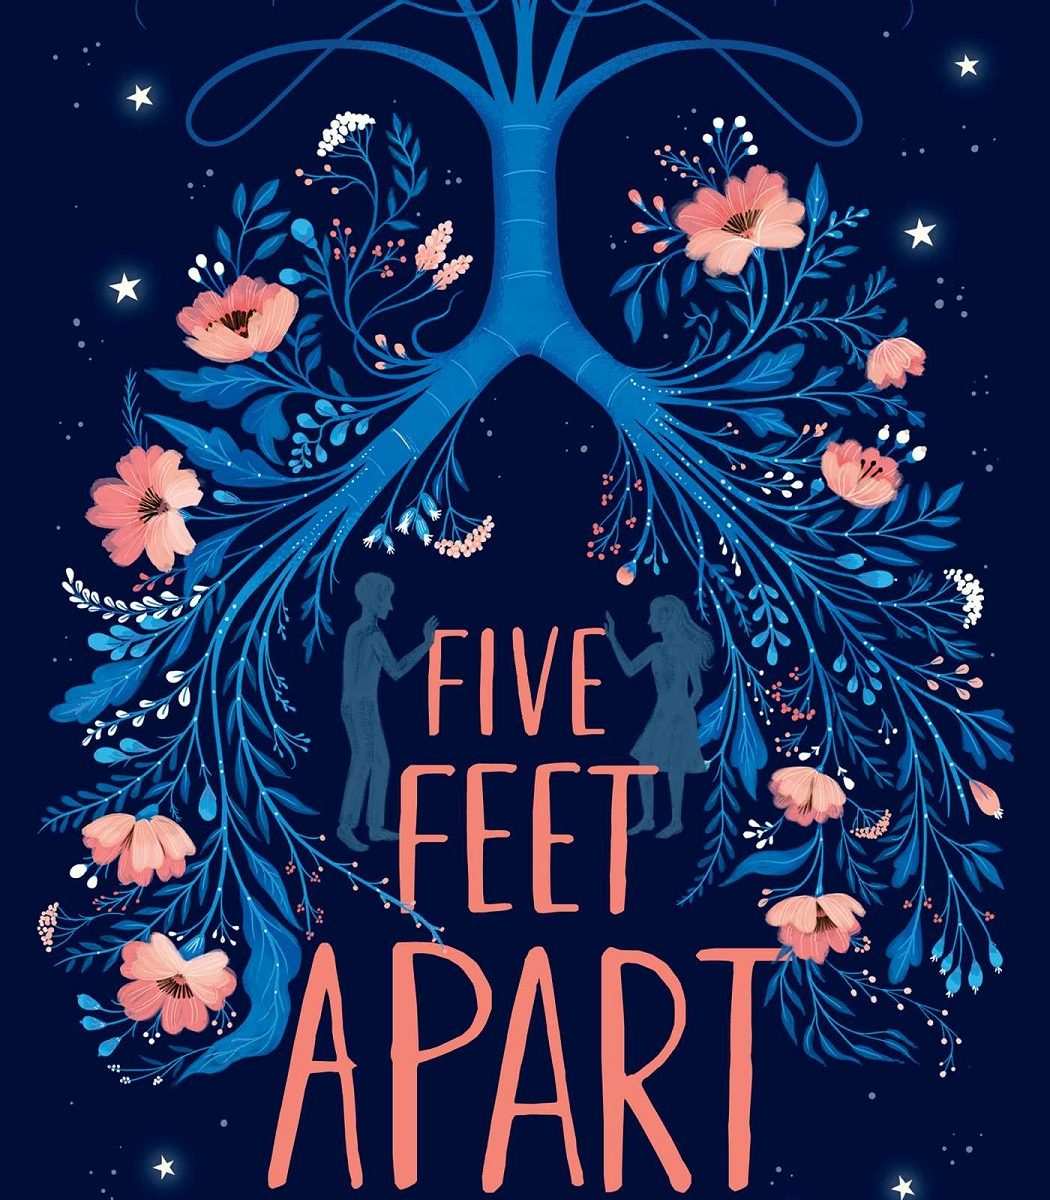 Five Feet Apart: The Love Story Of 2019